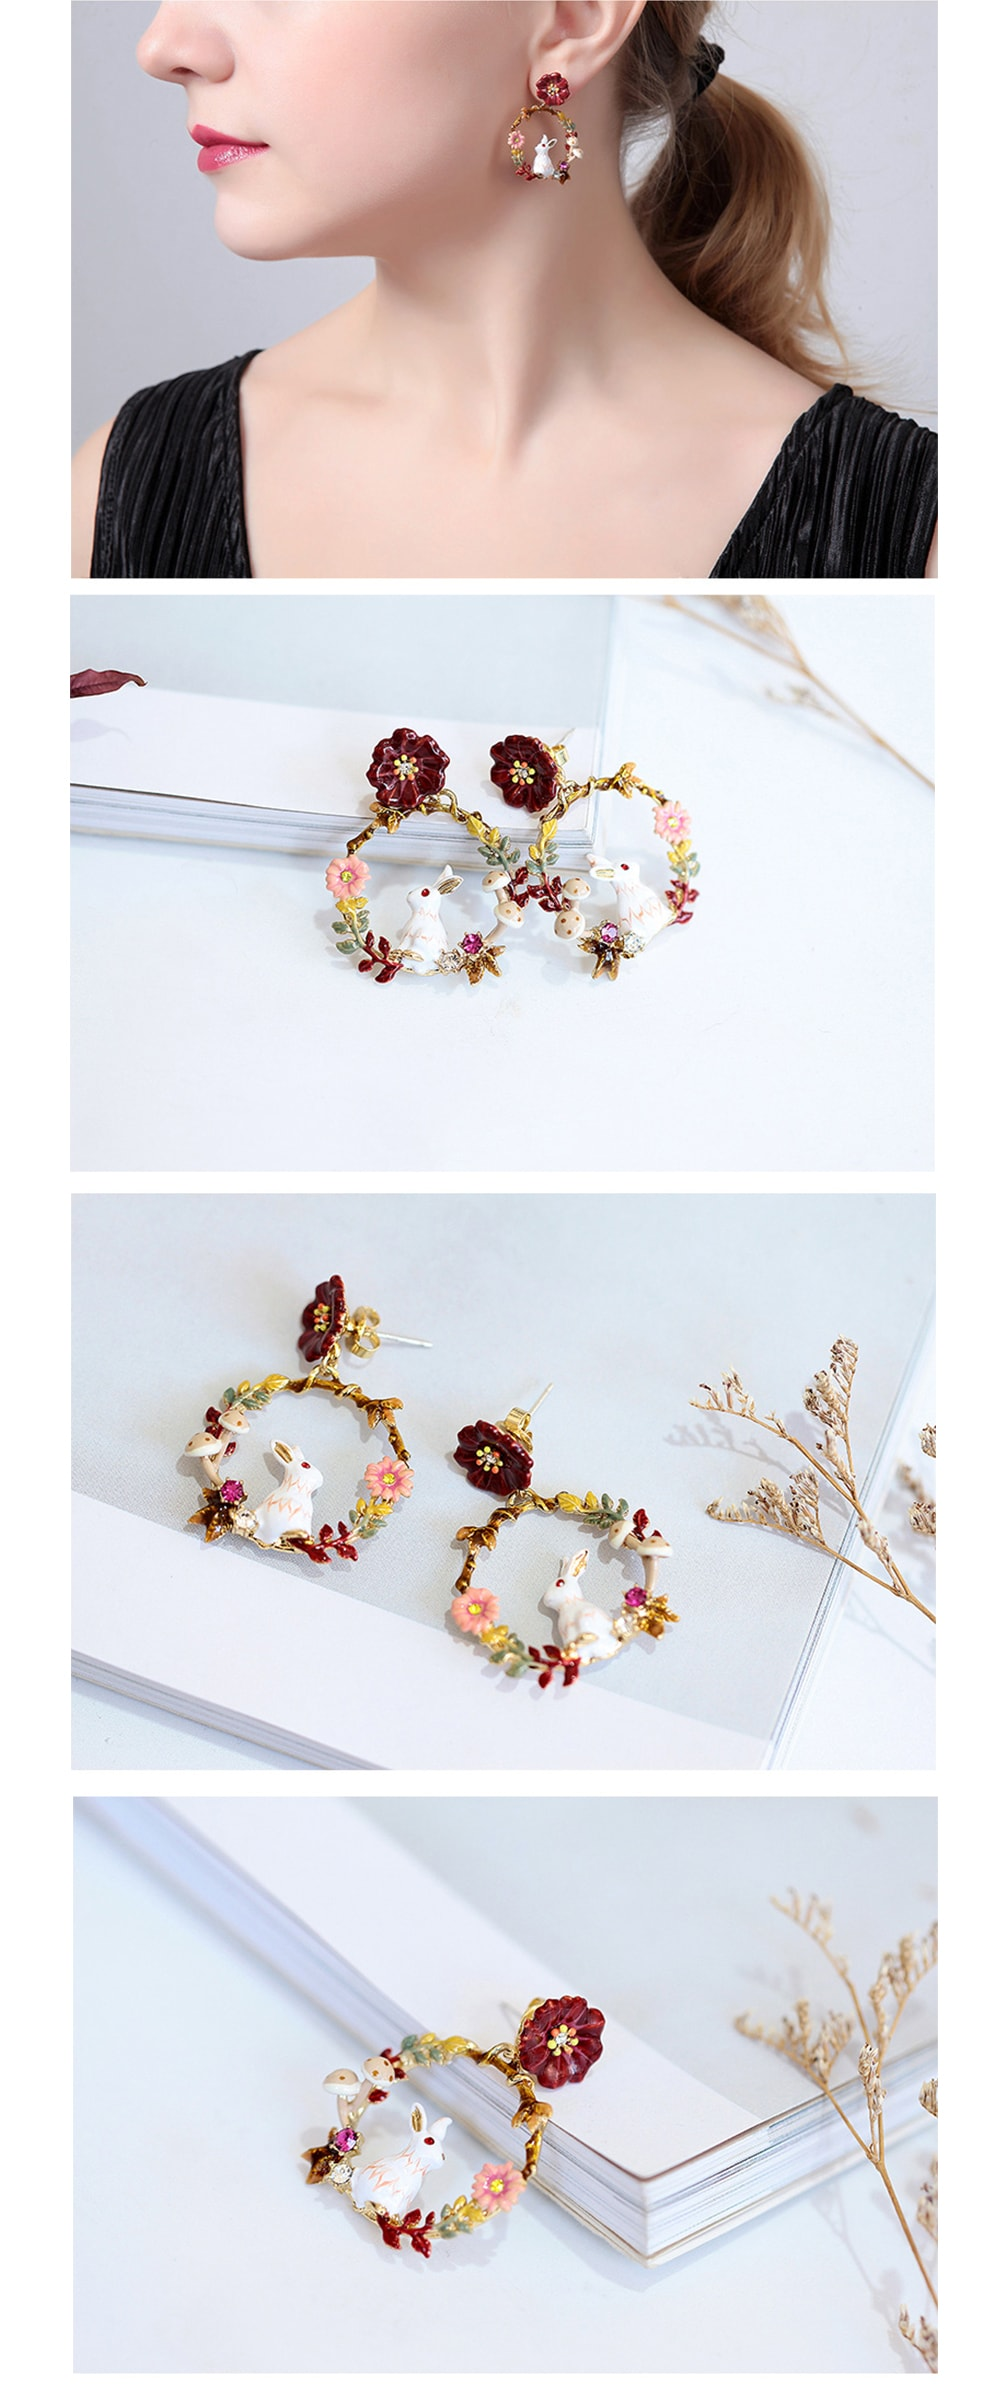 Enamel Rabbit Earrings Colorful and Cute Style